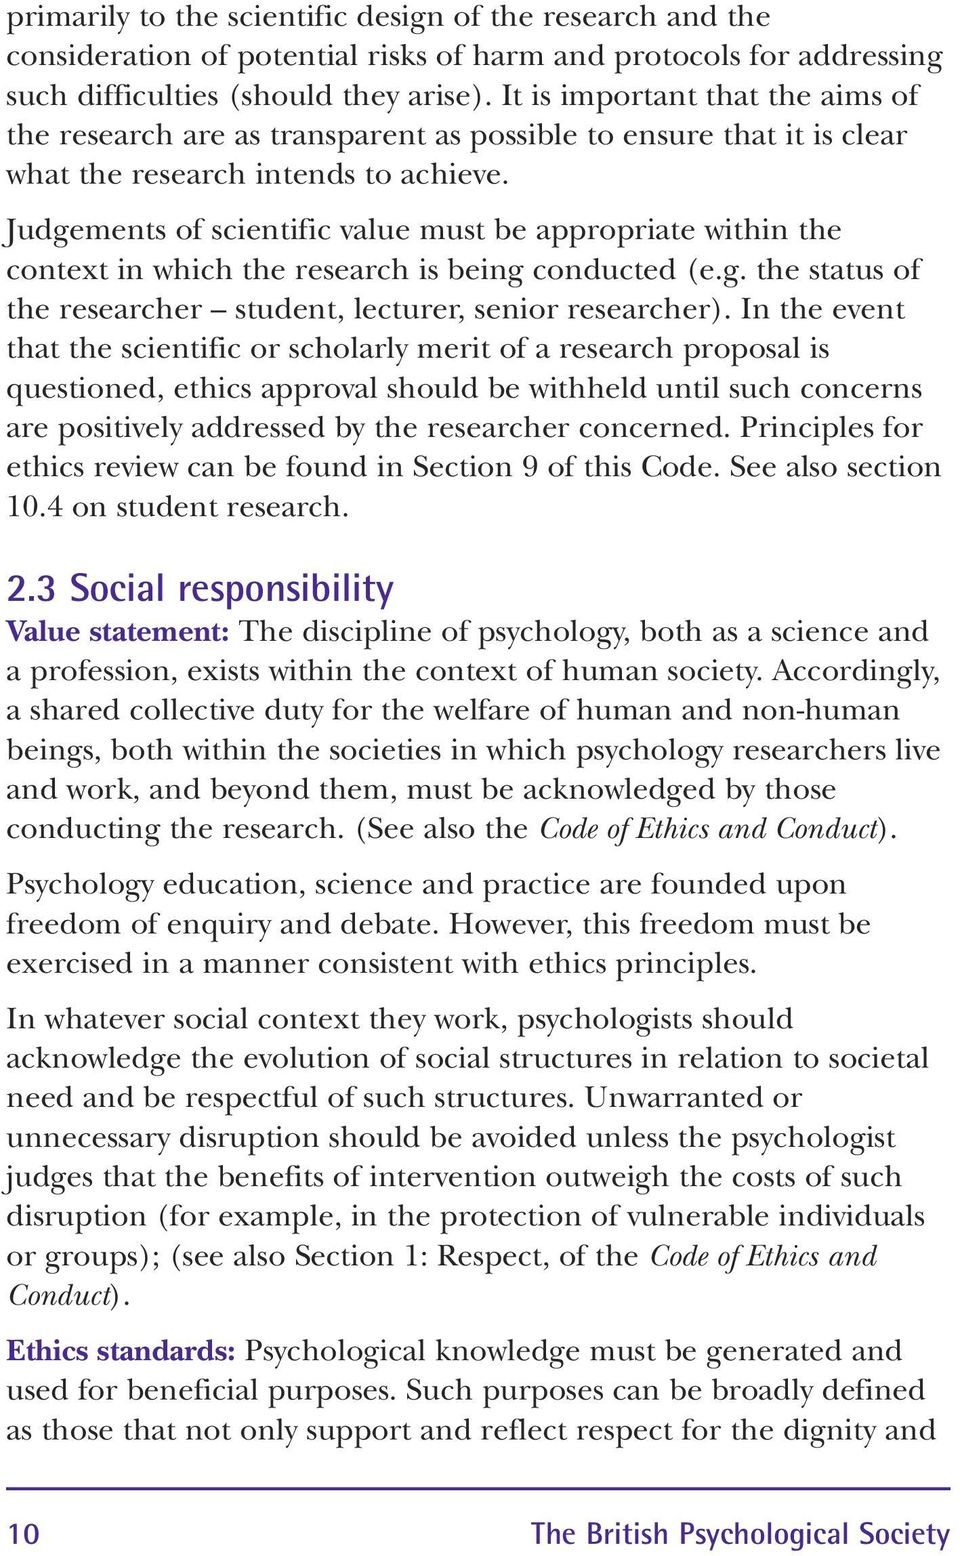 Judgements of scientific value must be appropriate within the context in which the research is being conducted (e.g. the status of the researcher student, lecturer, senior researcher).